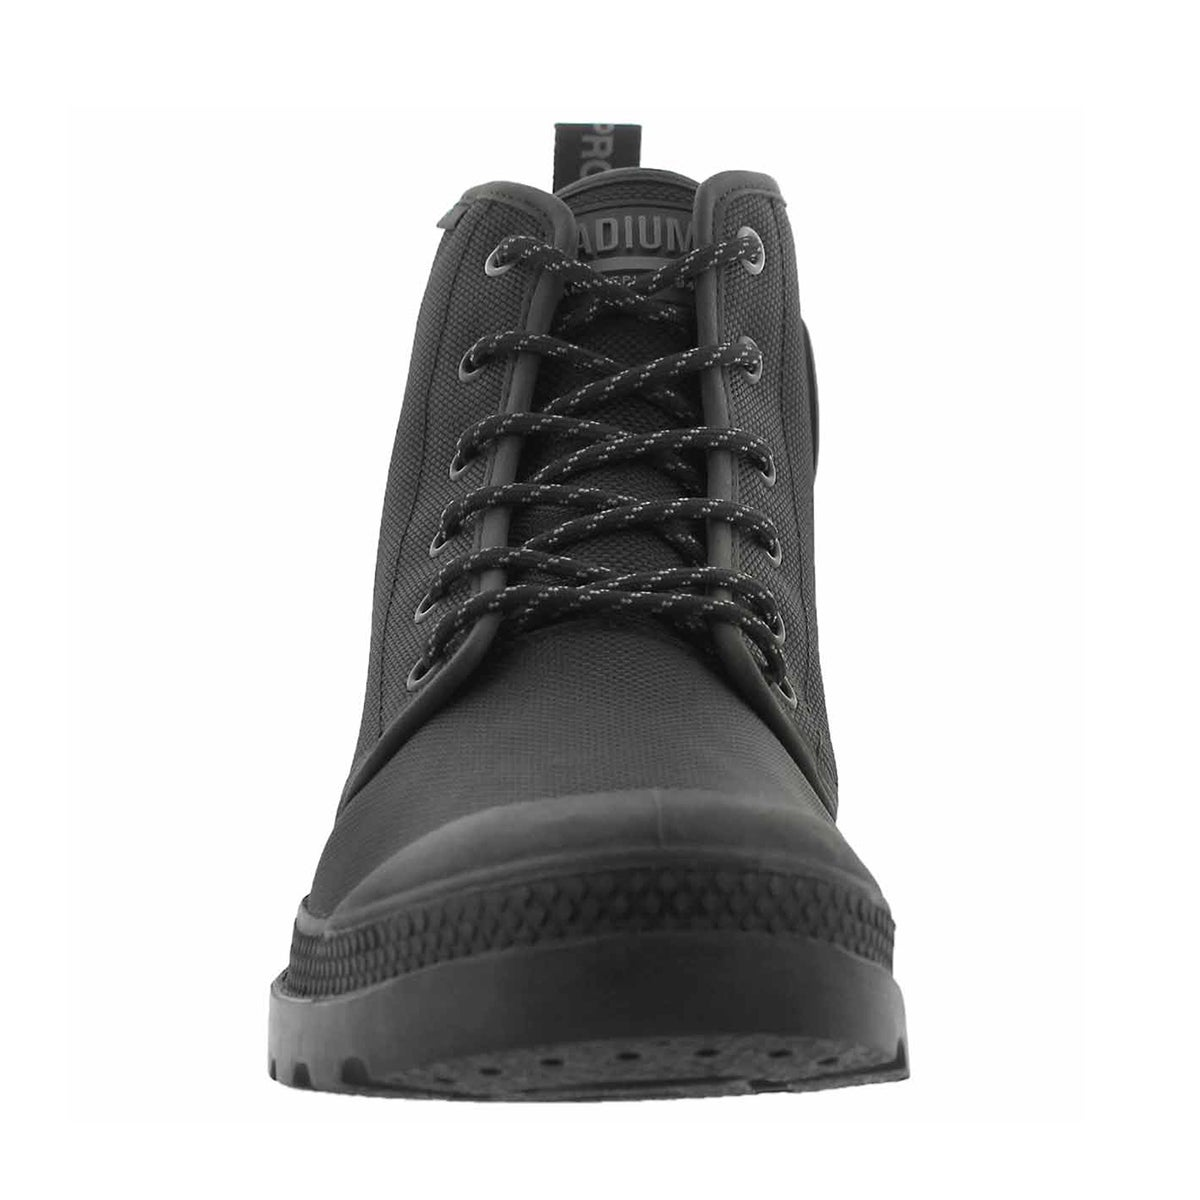 Mns Pampa Hi Original wp blk ankle boot